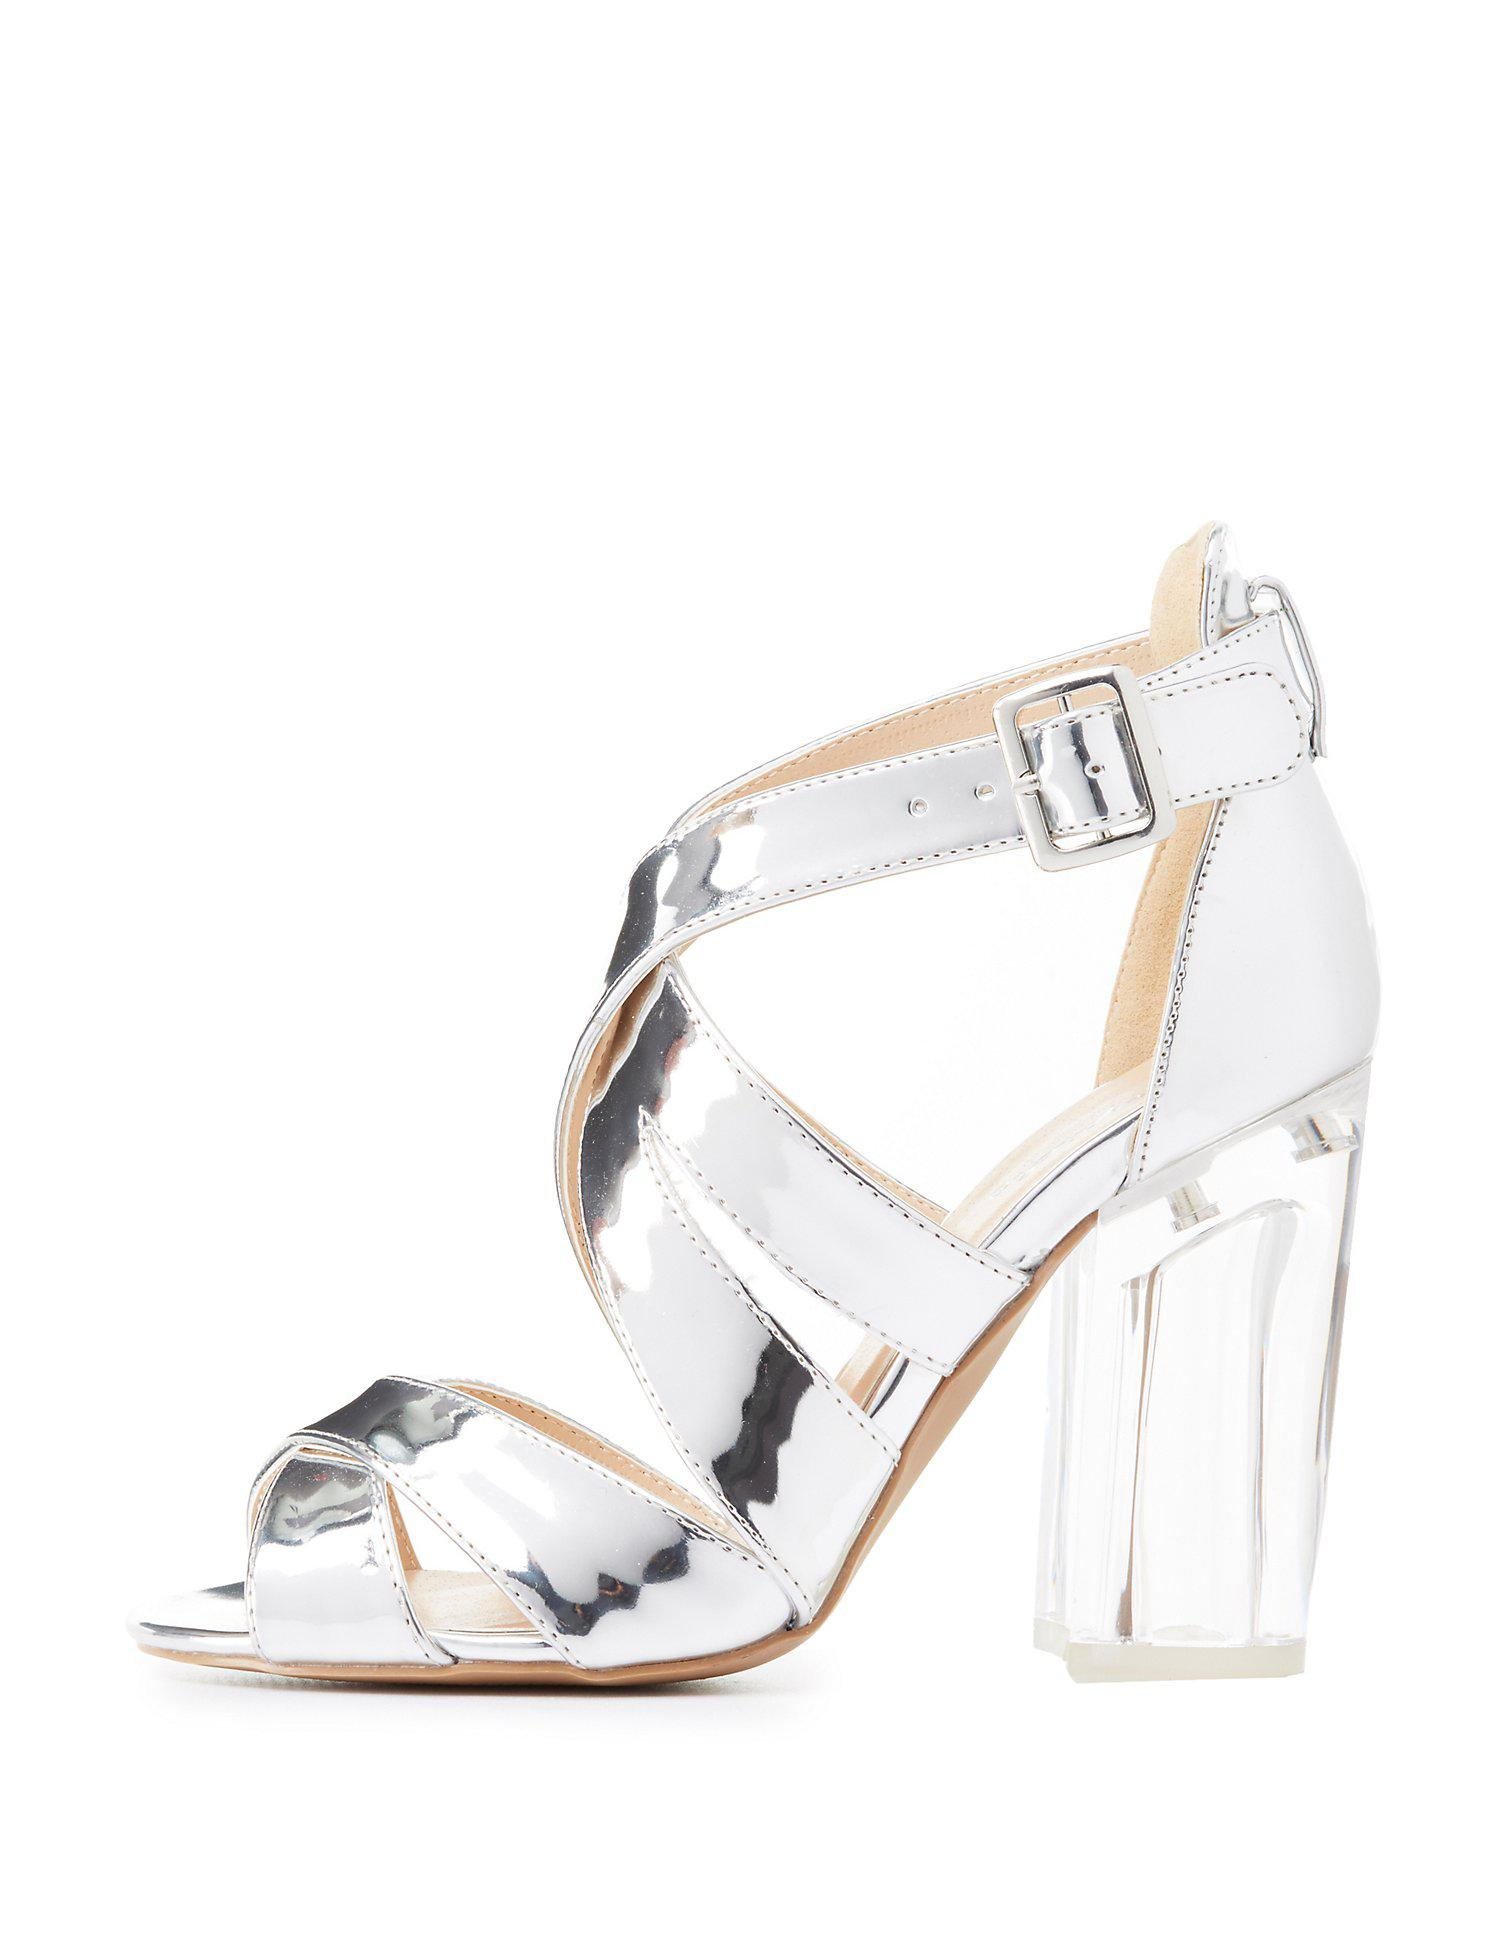 45ed100df7a Lyst - Charlotte Russe Qupid Metallic Lucite Heel Sandals in Metallic